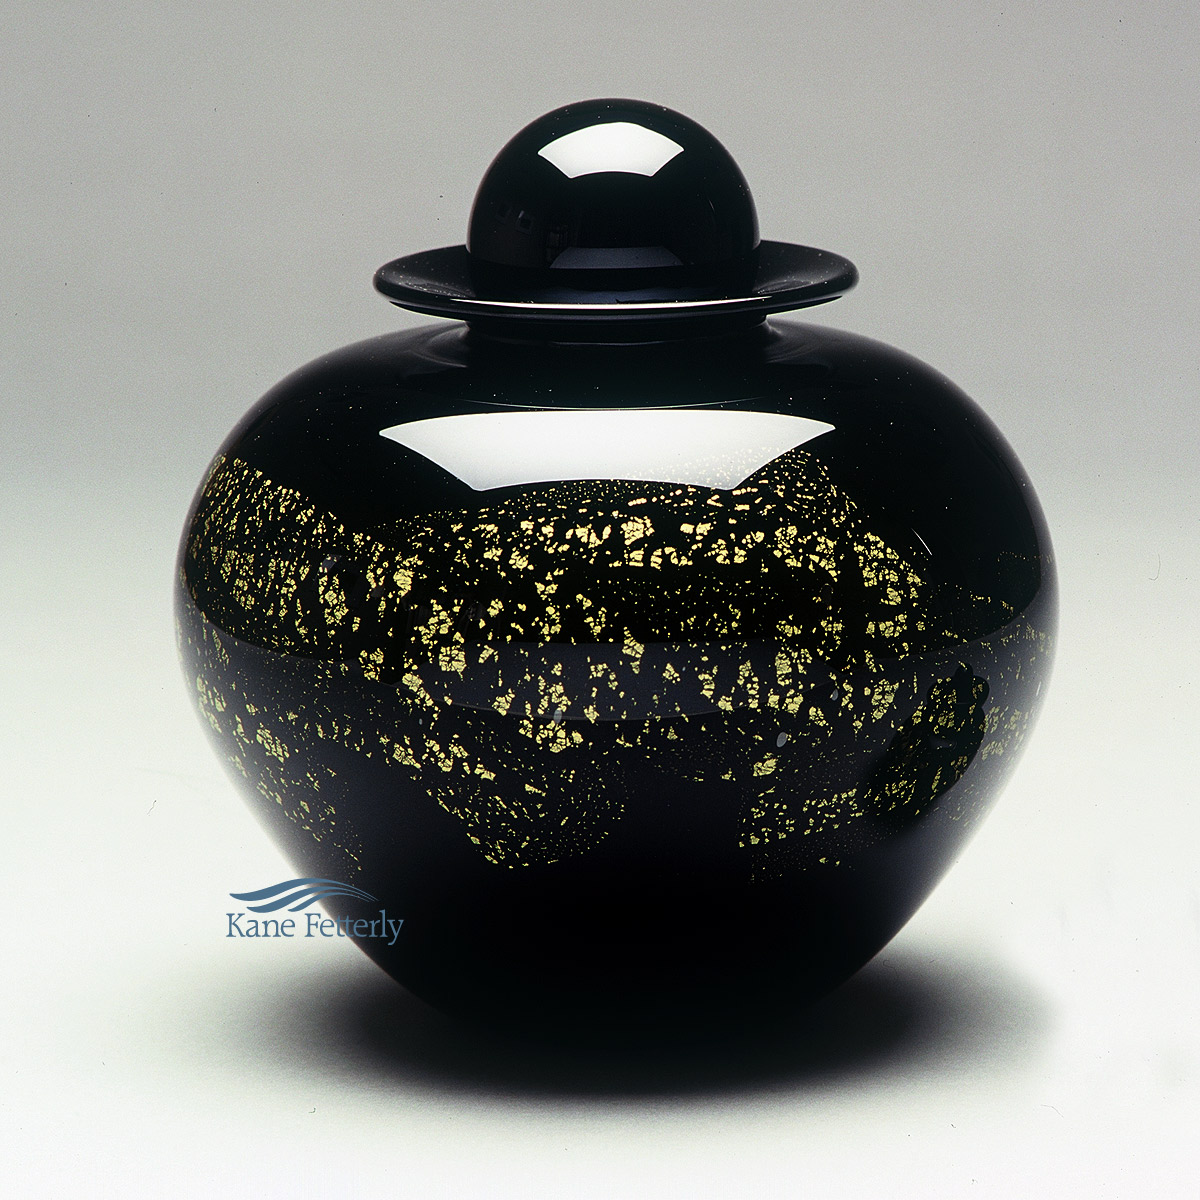 U8210BG Hand-blown glass urn